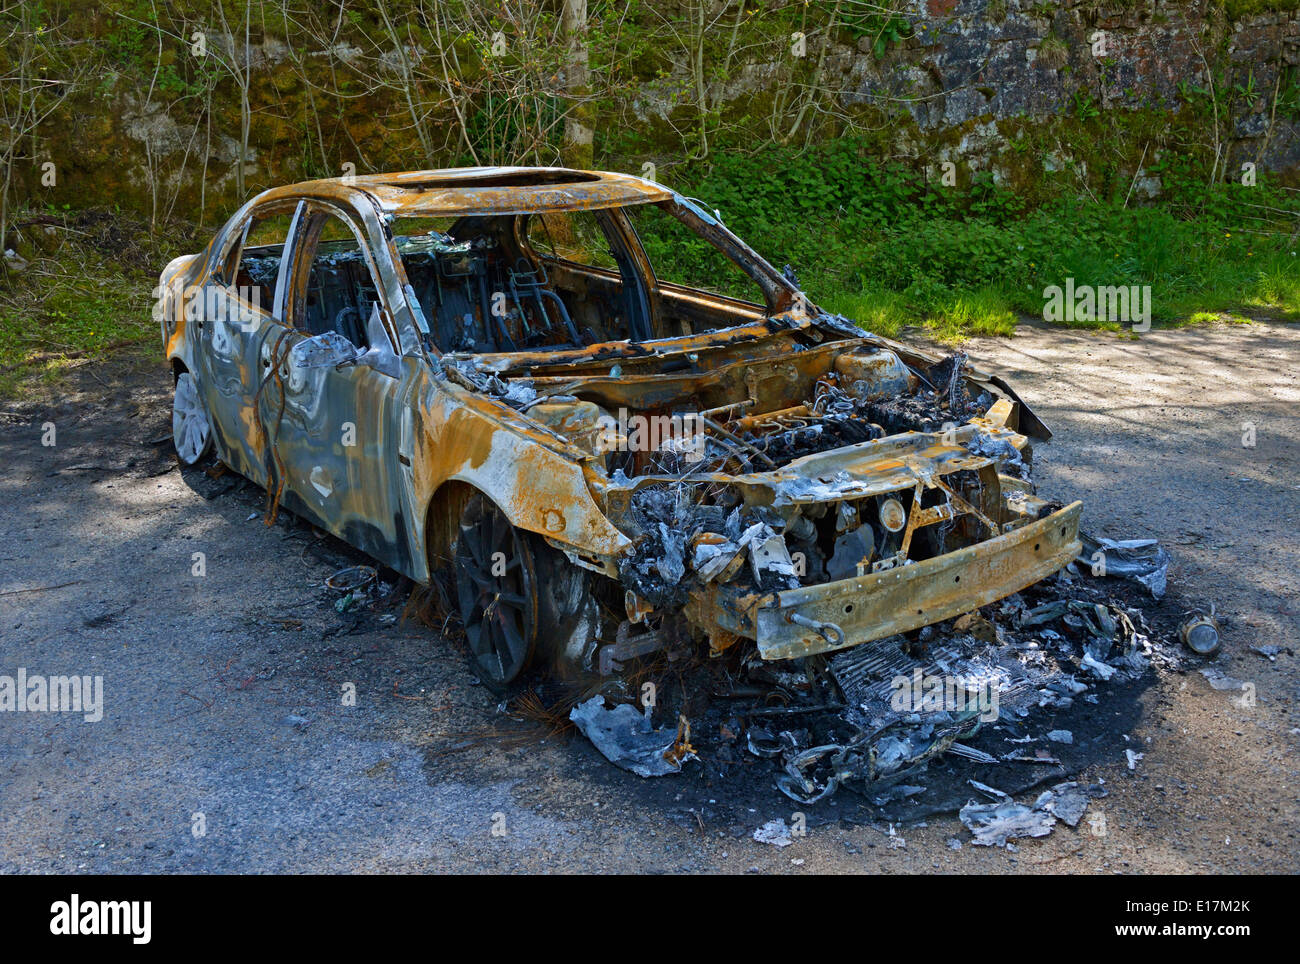 Burned-out car. Scout Scar carpark, Underbarrow Road, Kendal, Cumbria, England, United Kingdom, Europe. Stock Photo